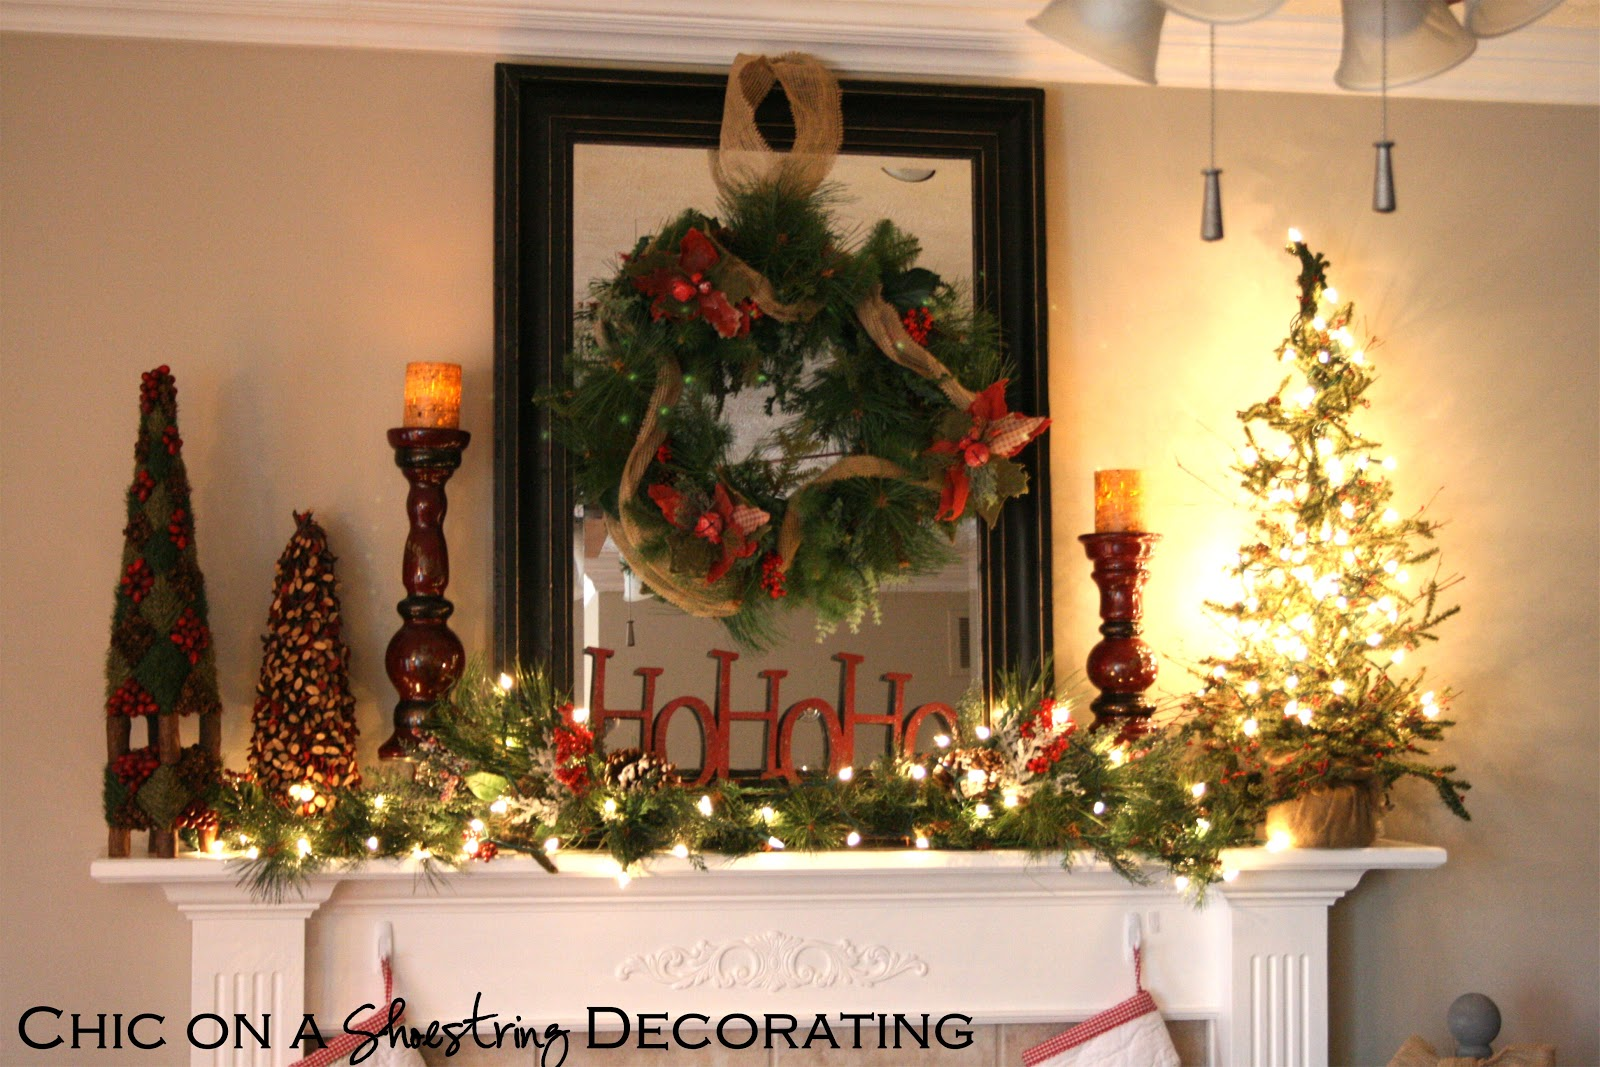 Design Christmas Mantel Ideas chic on a shoestring decorating rustic christmas mantel decor